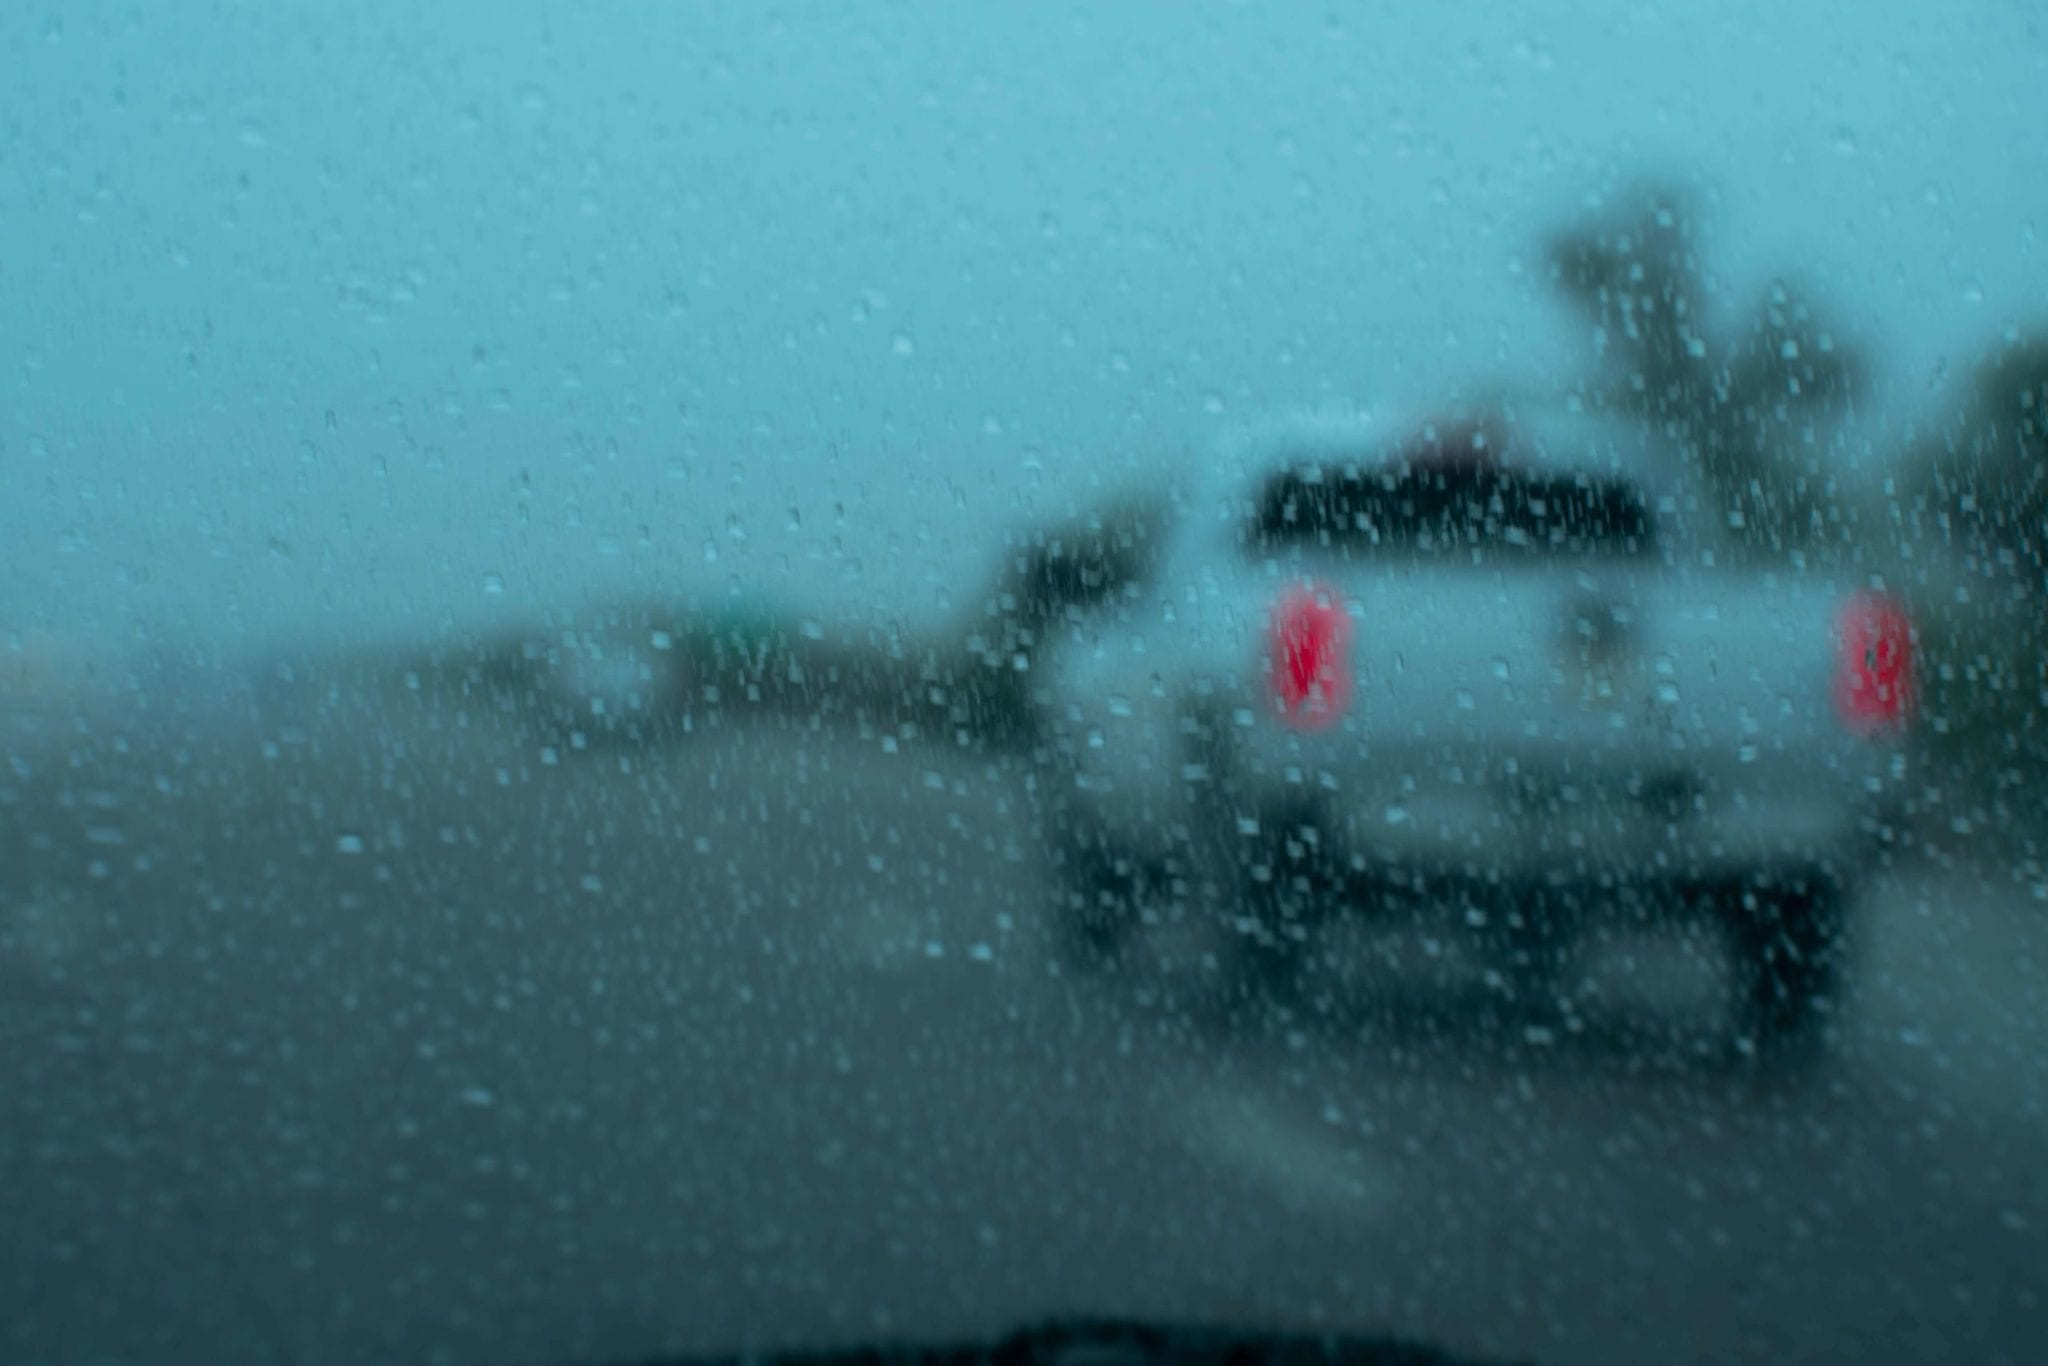 Rainy Winter Ahead: How to Drive Safely